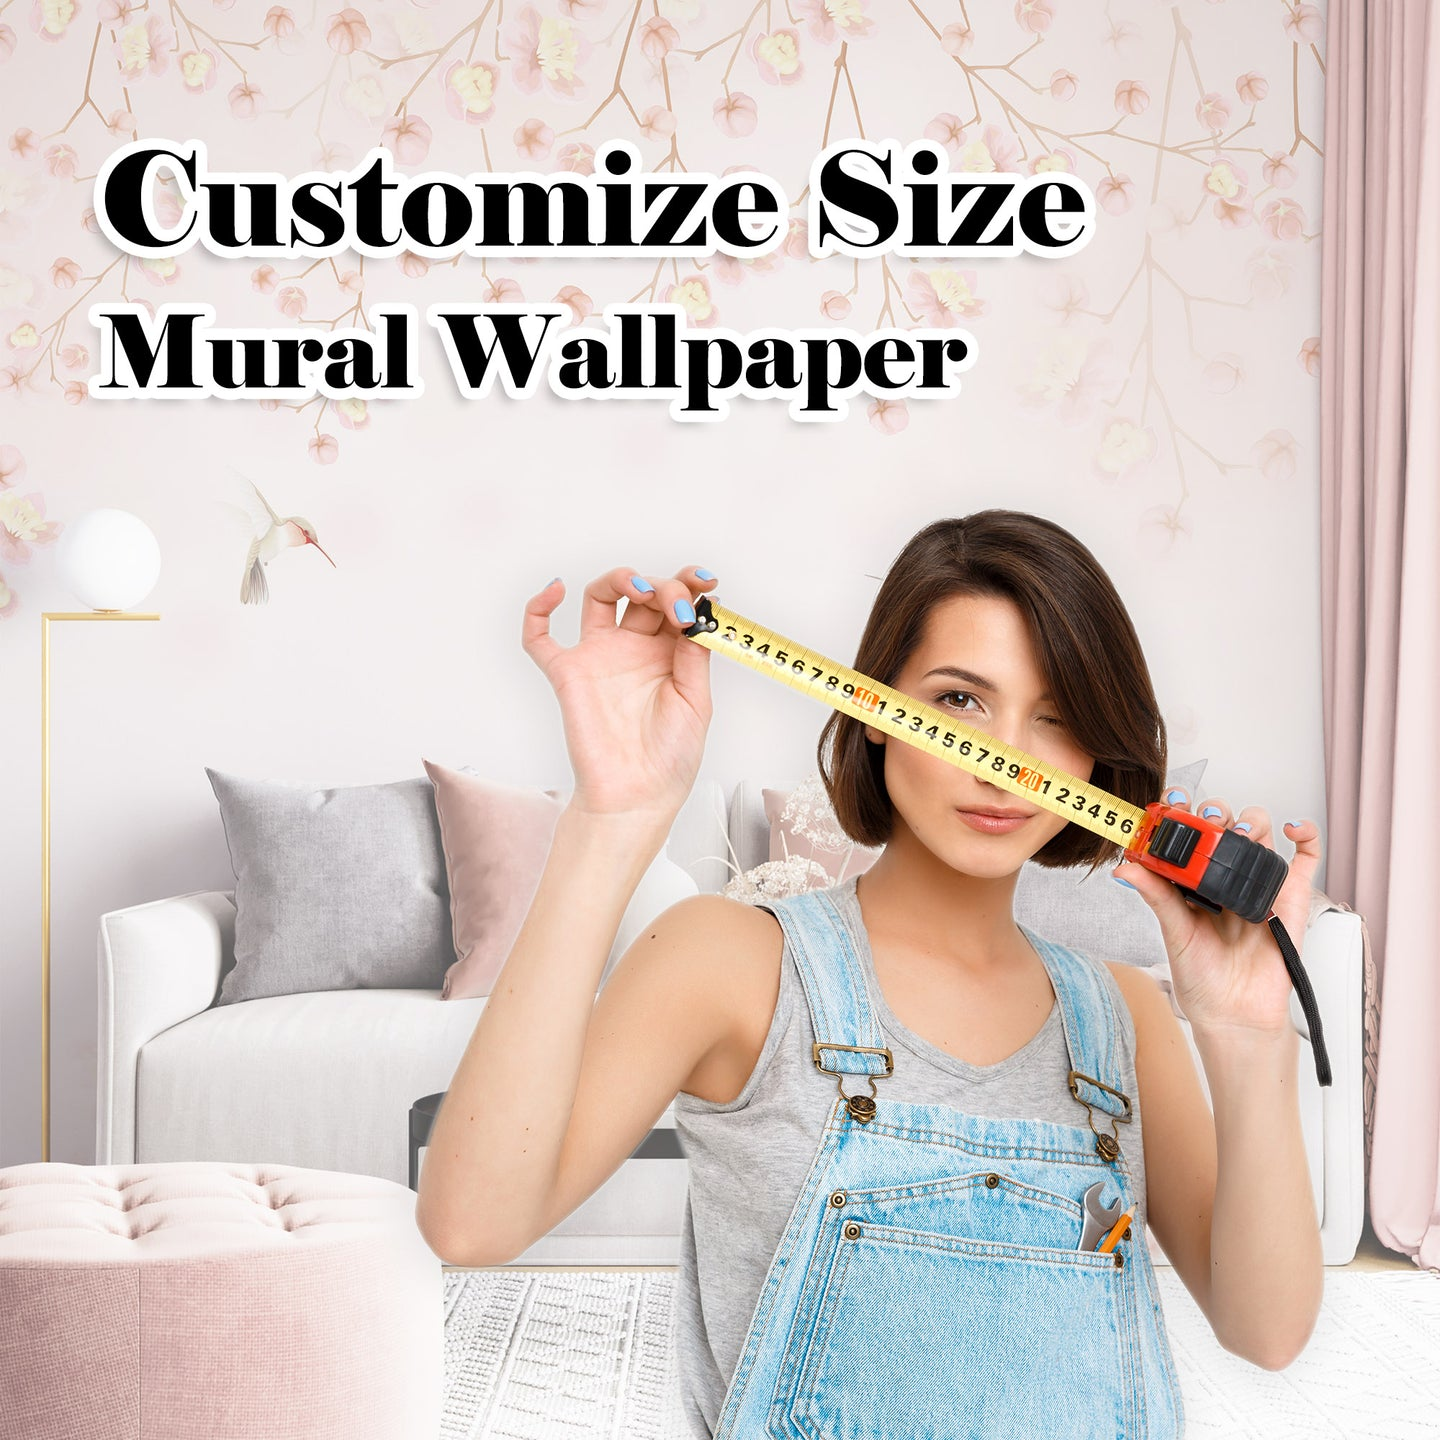 Customize Size Mural Wallpaper